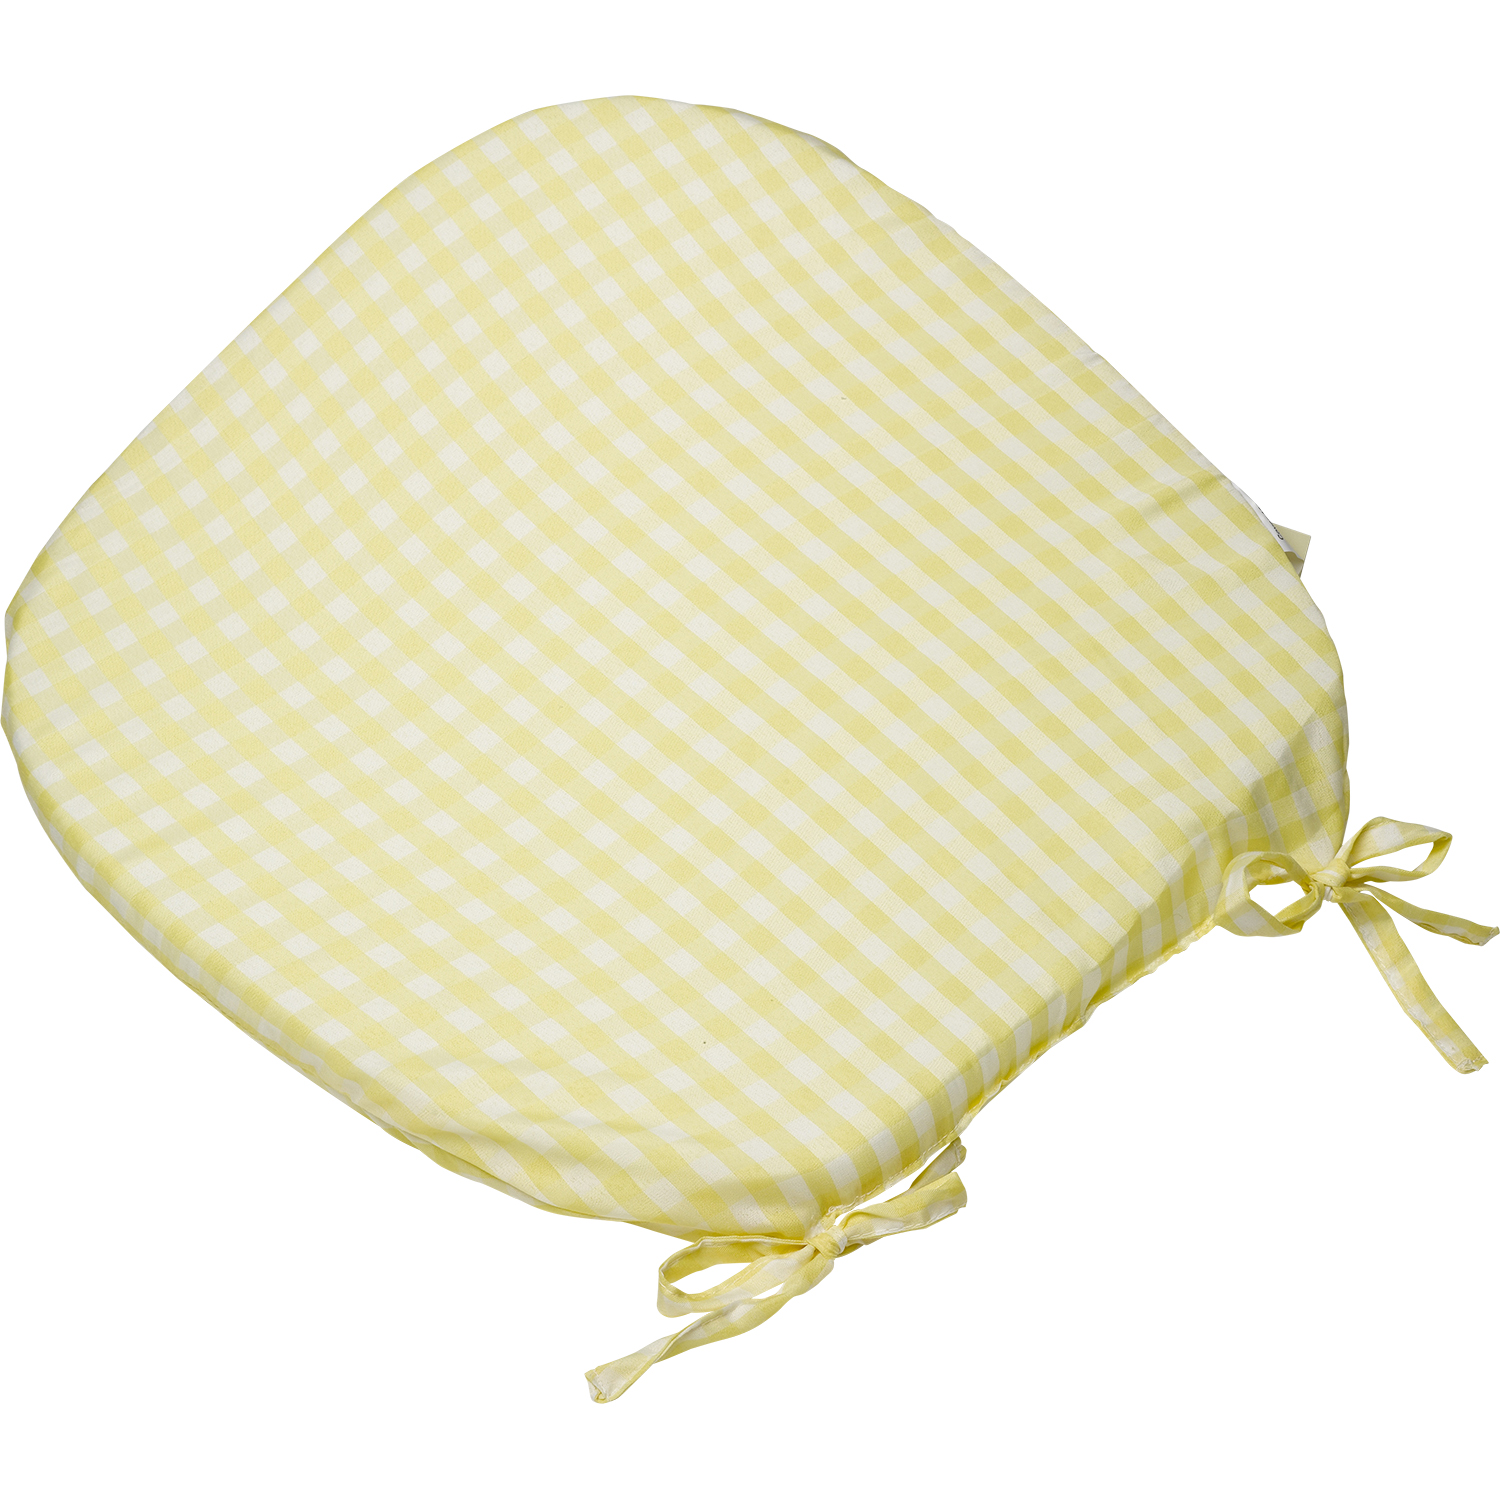 Gingham Chair Gingham Check Tie On Seat Pad 16 Quot X 16 Quot Kitchen Outdoor